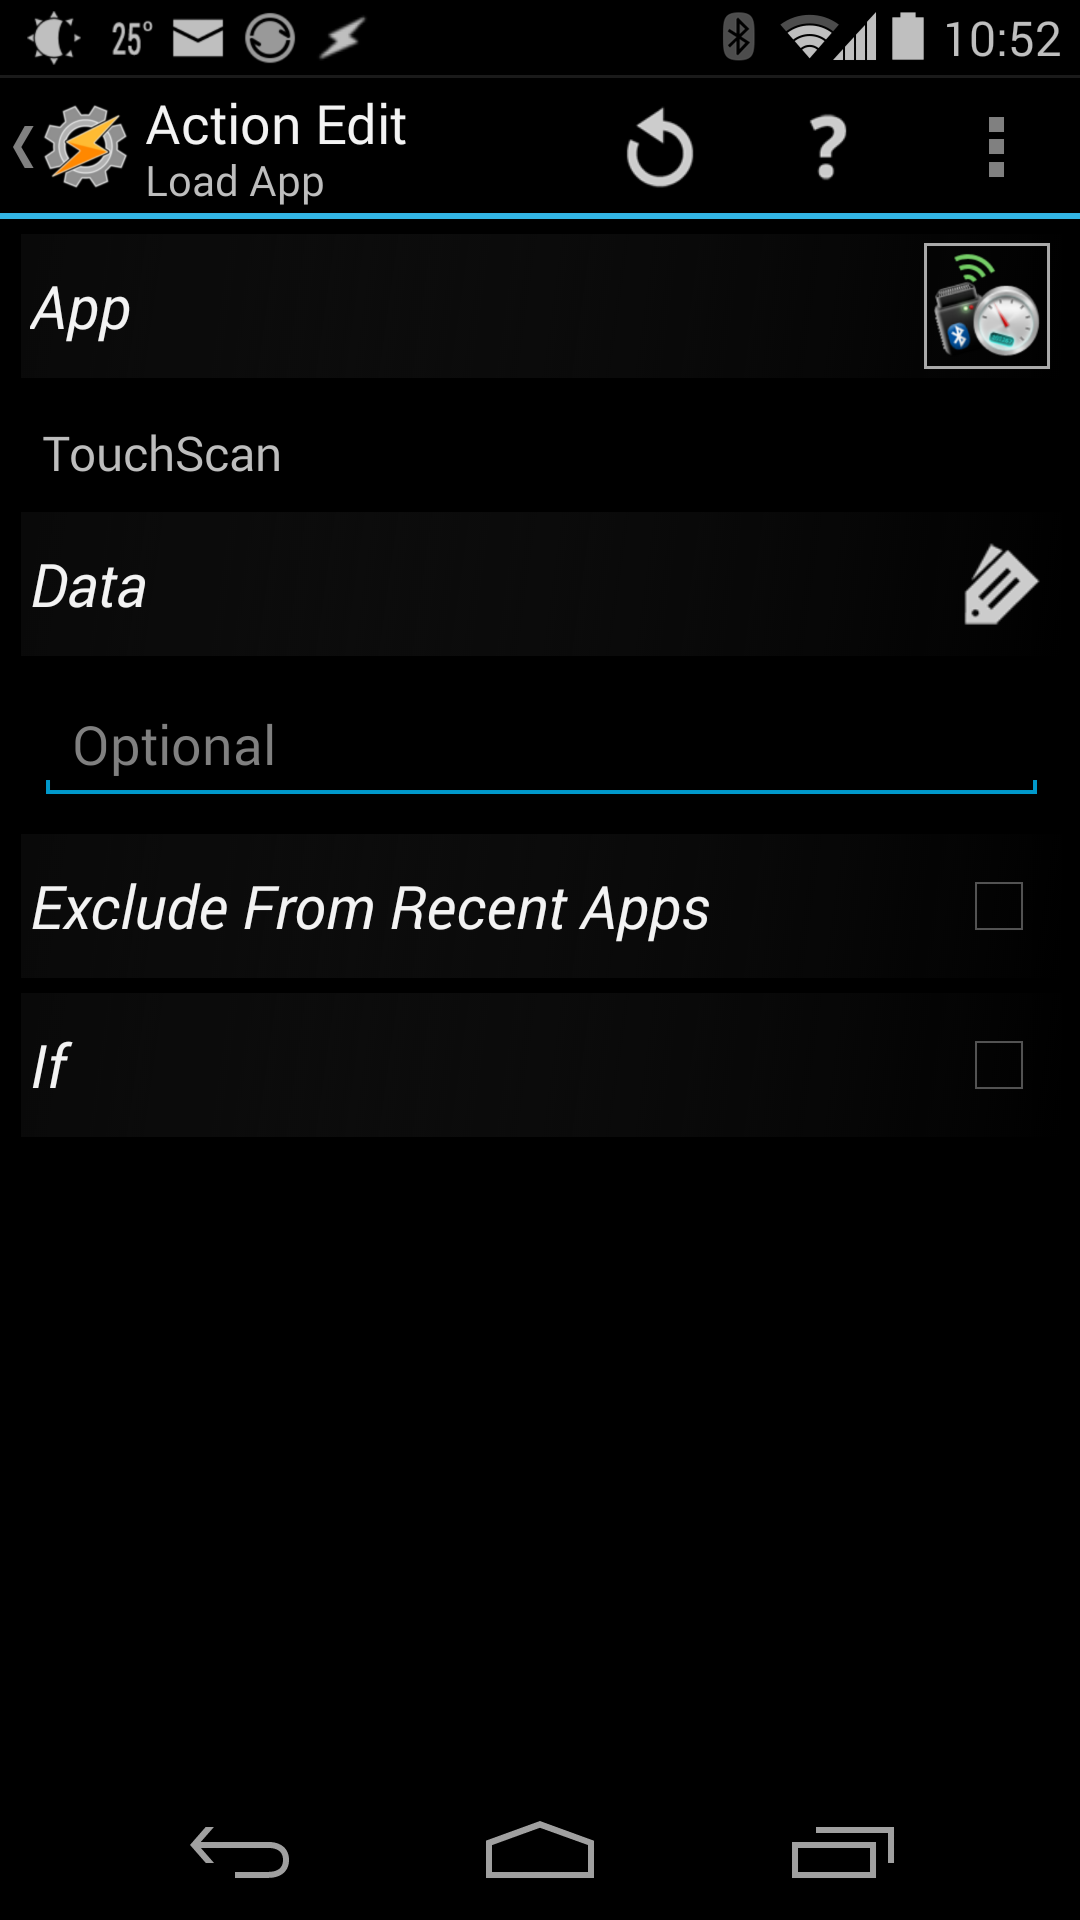 android torque pro tasker